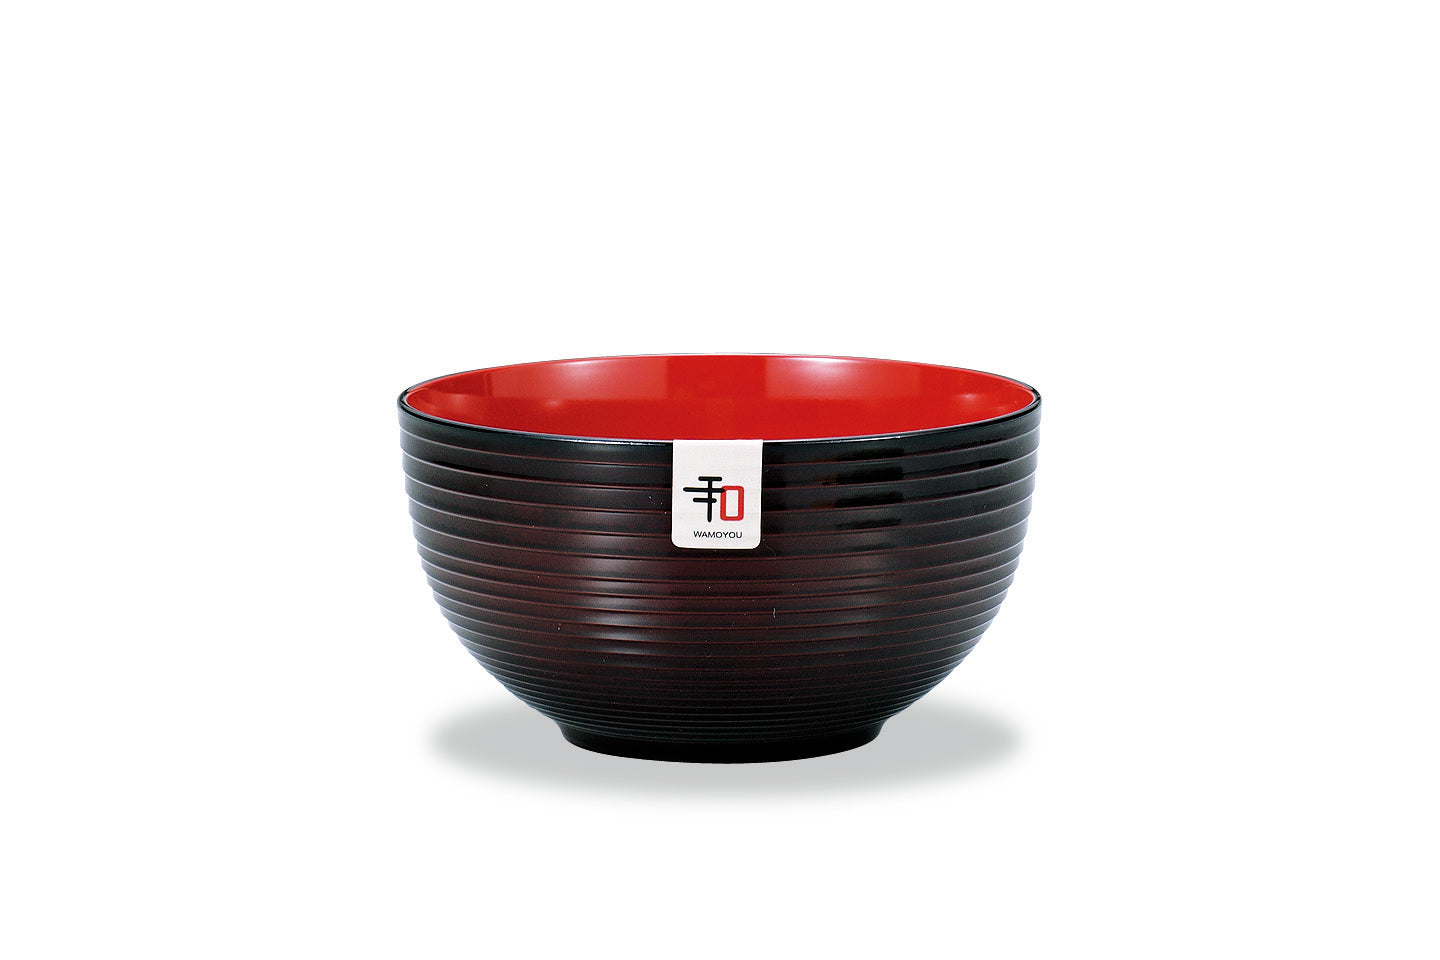 Wamoyou Rice Bowl | Tame by Showa - Bento&co Japanese Bento Lunch Boxes and Kitchenware Specialists